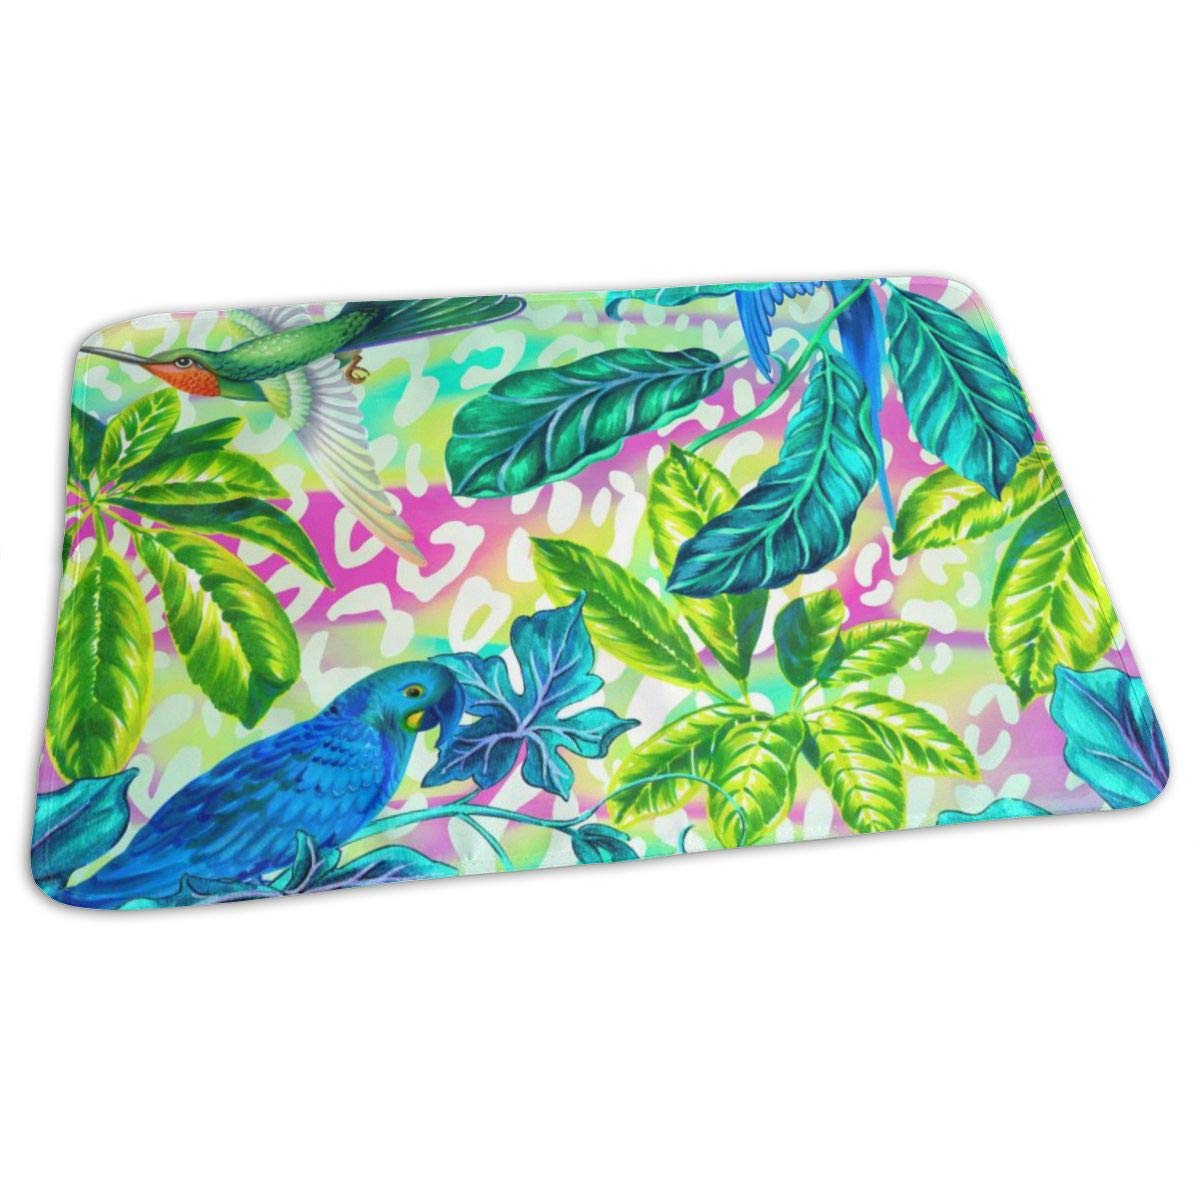 Osvbs Lovely Baby Reusable Waterproof Portable Hummingbirds and Parrots of Tropical Retro Style Changing Pad Home Travel 27.5''x19.7'' by Osvbs